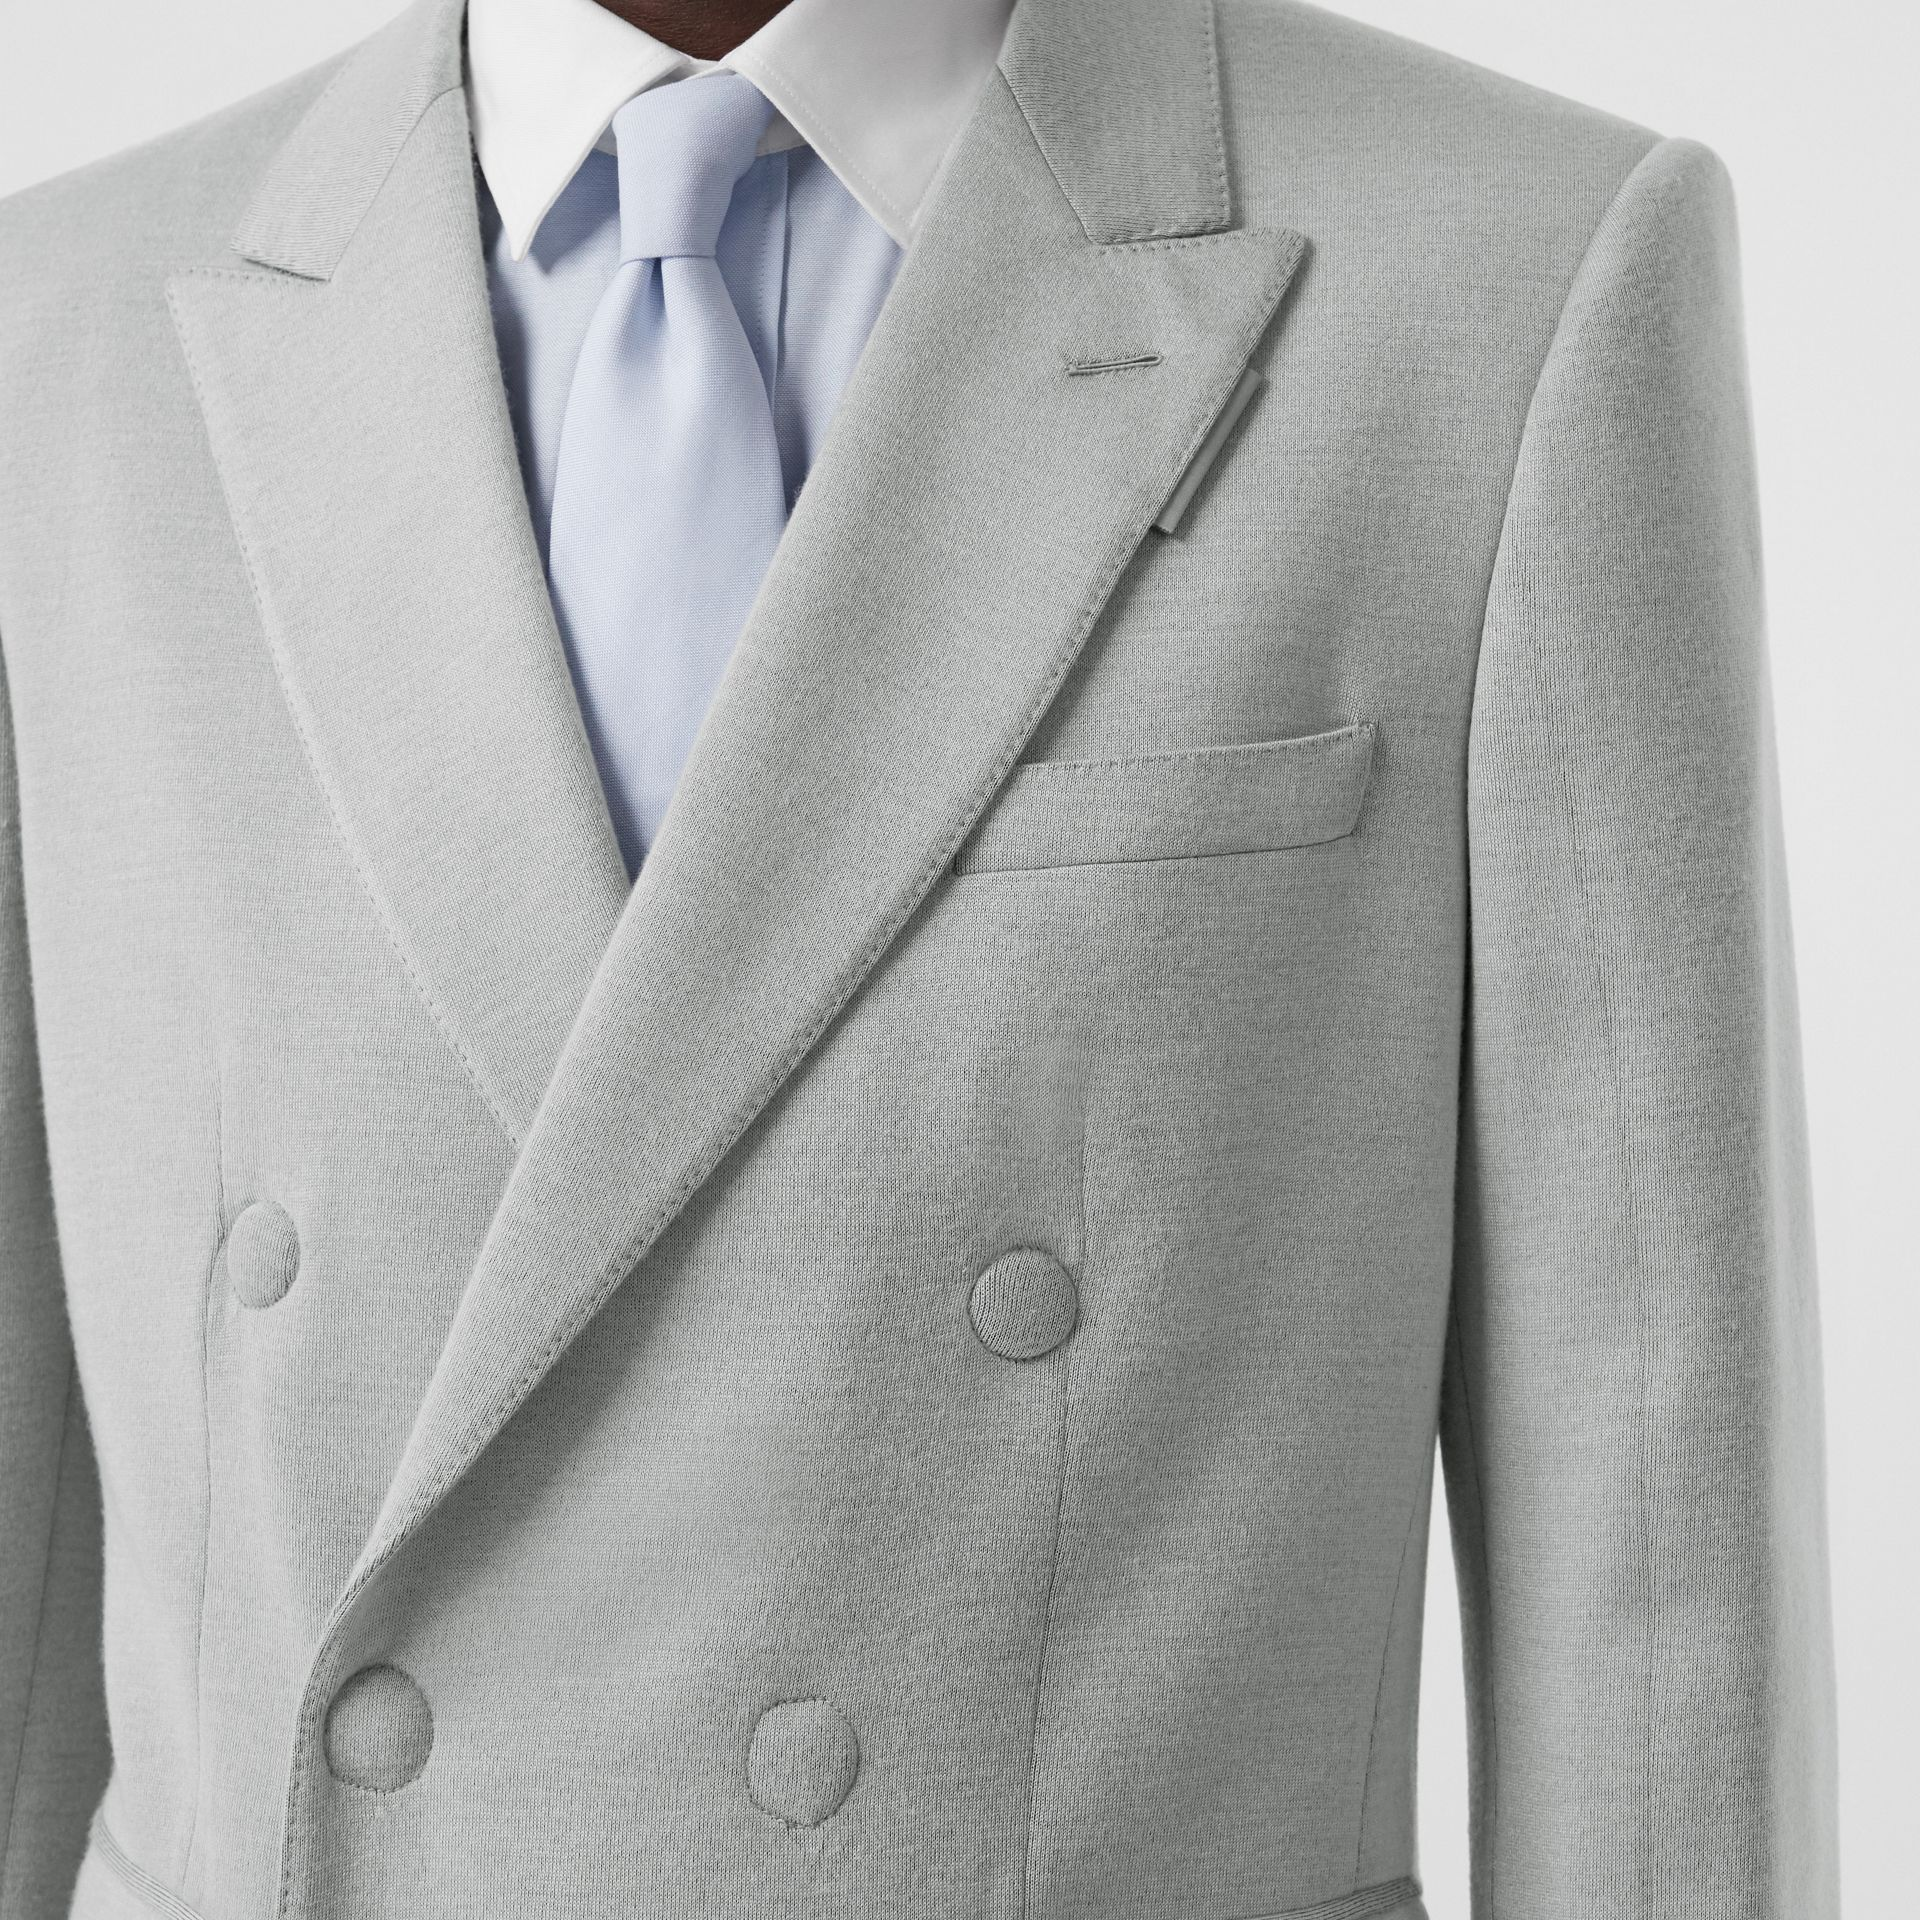 English Fit Cashmere Silk Jersey Double-breasted Jacket in Light Pebble Grey | Burberry - gallery image 5